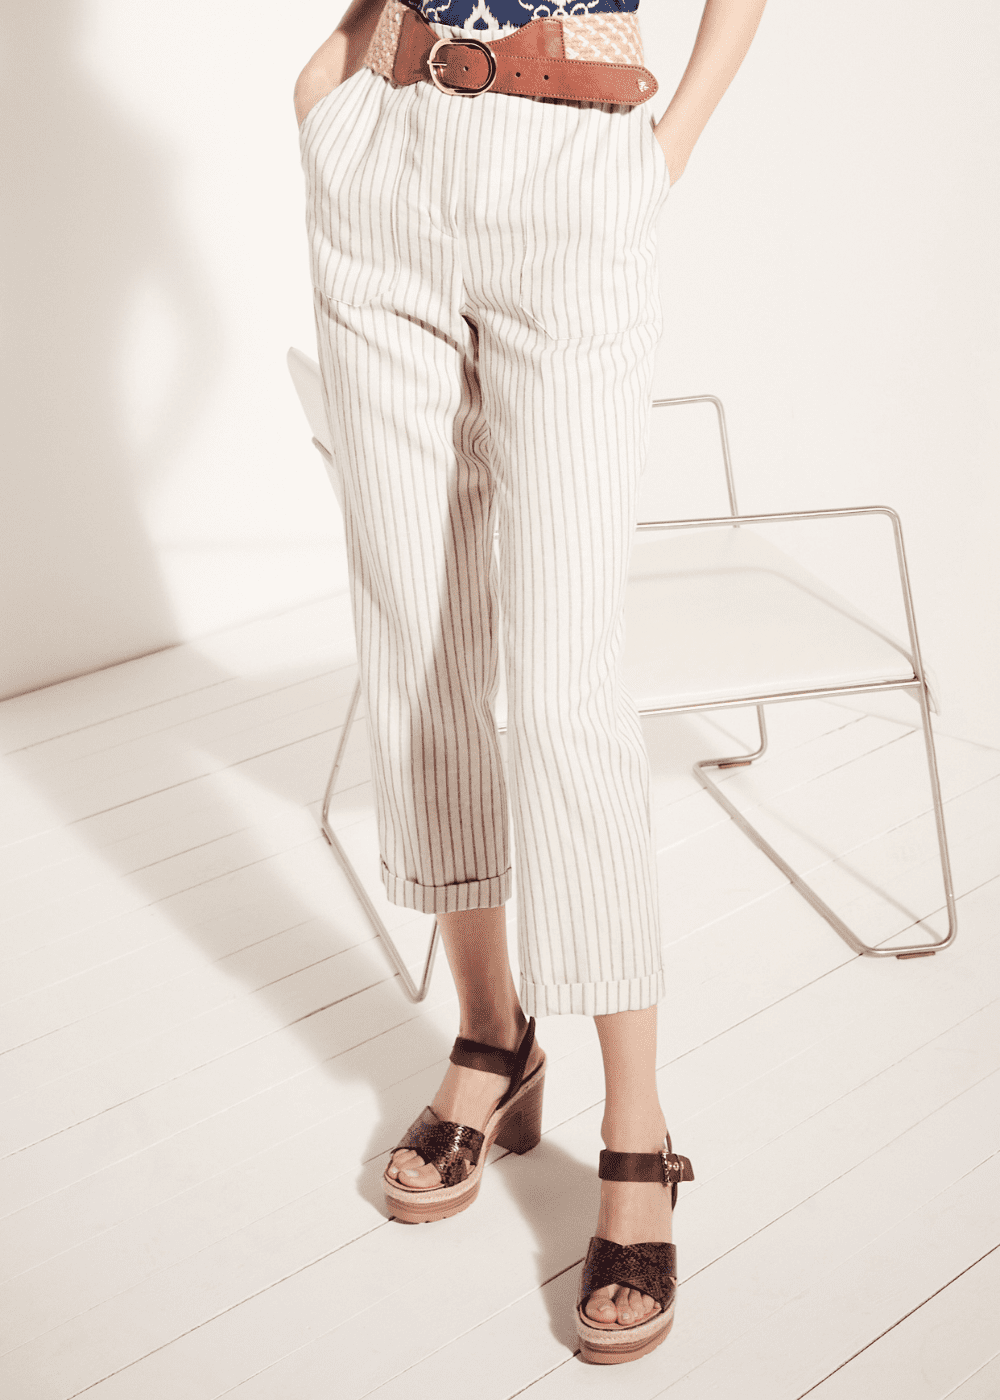 Lara trousers with large pockets and belt - L.beige / Cacao Stripes - Woman